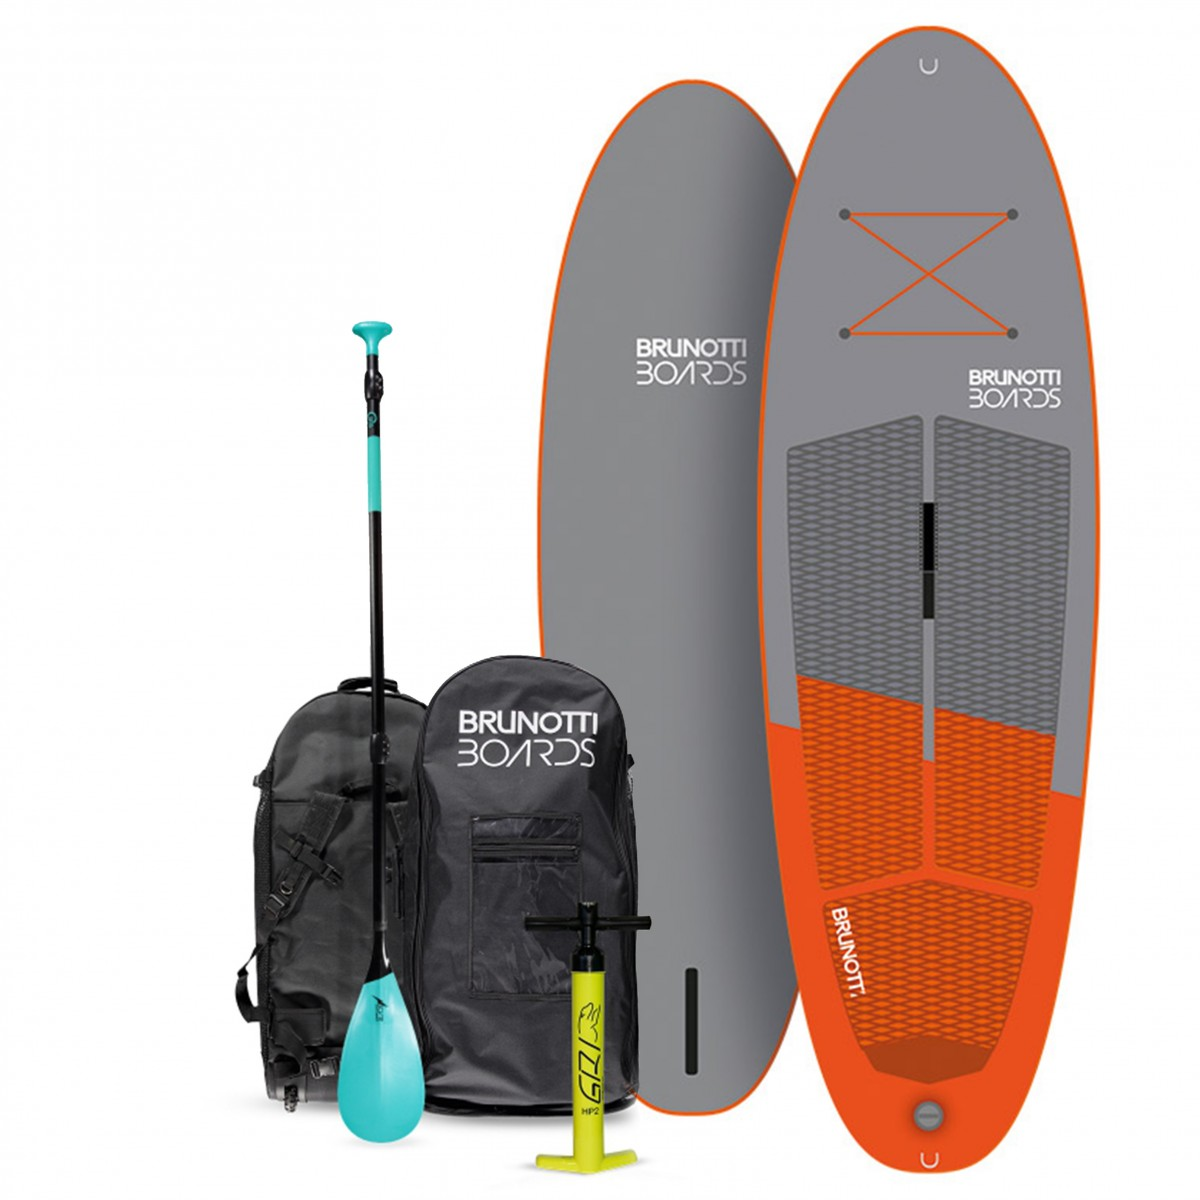 Pool Komplettset Test Shop Kiten Lernen Bei Wavebandits Kite And Sup Kurs